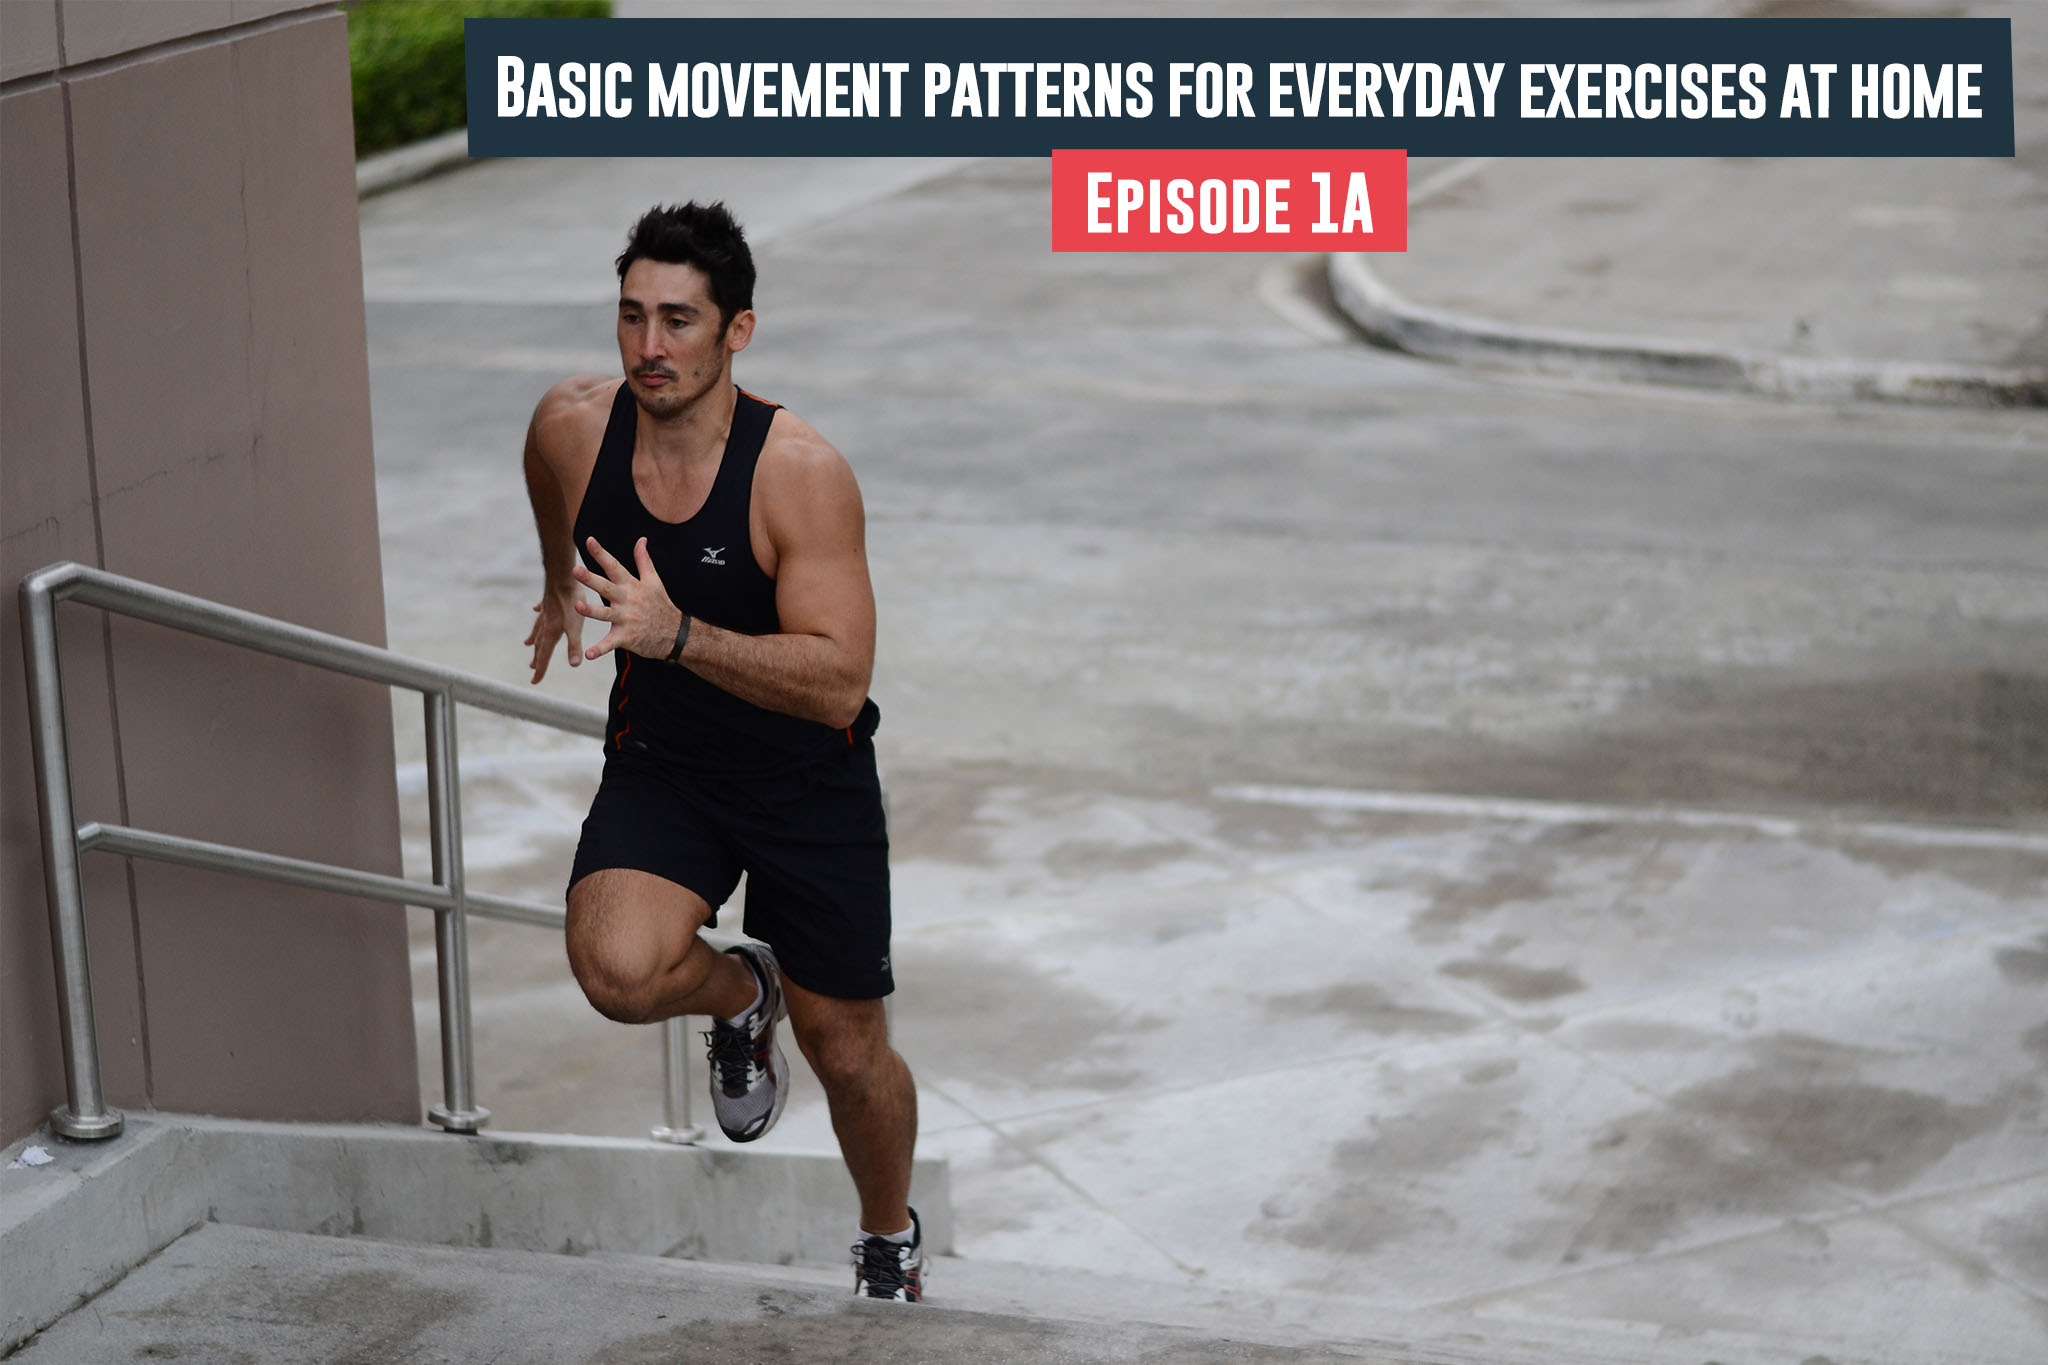 Basic Movement Patterns